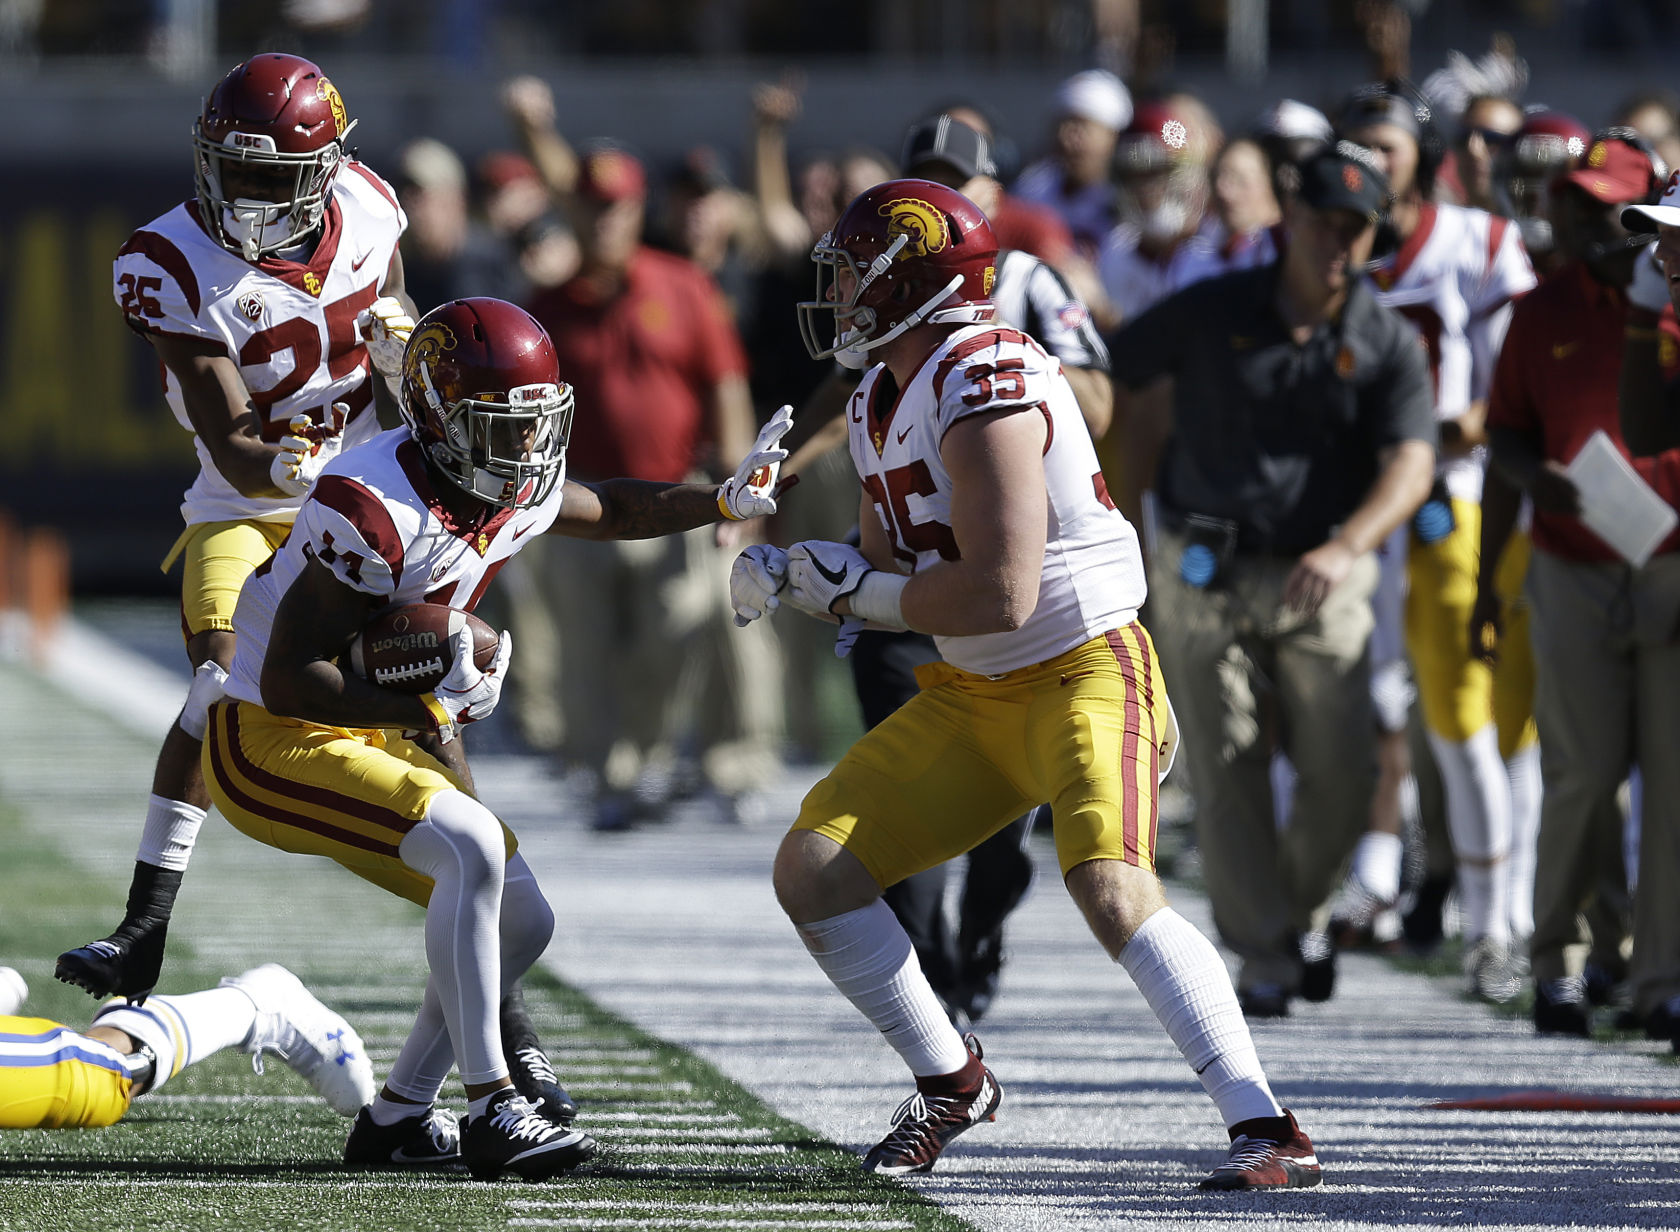 USC squashed a Cal upset bid to stay undefeated